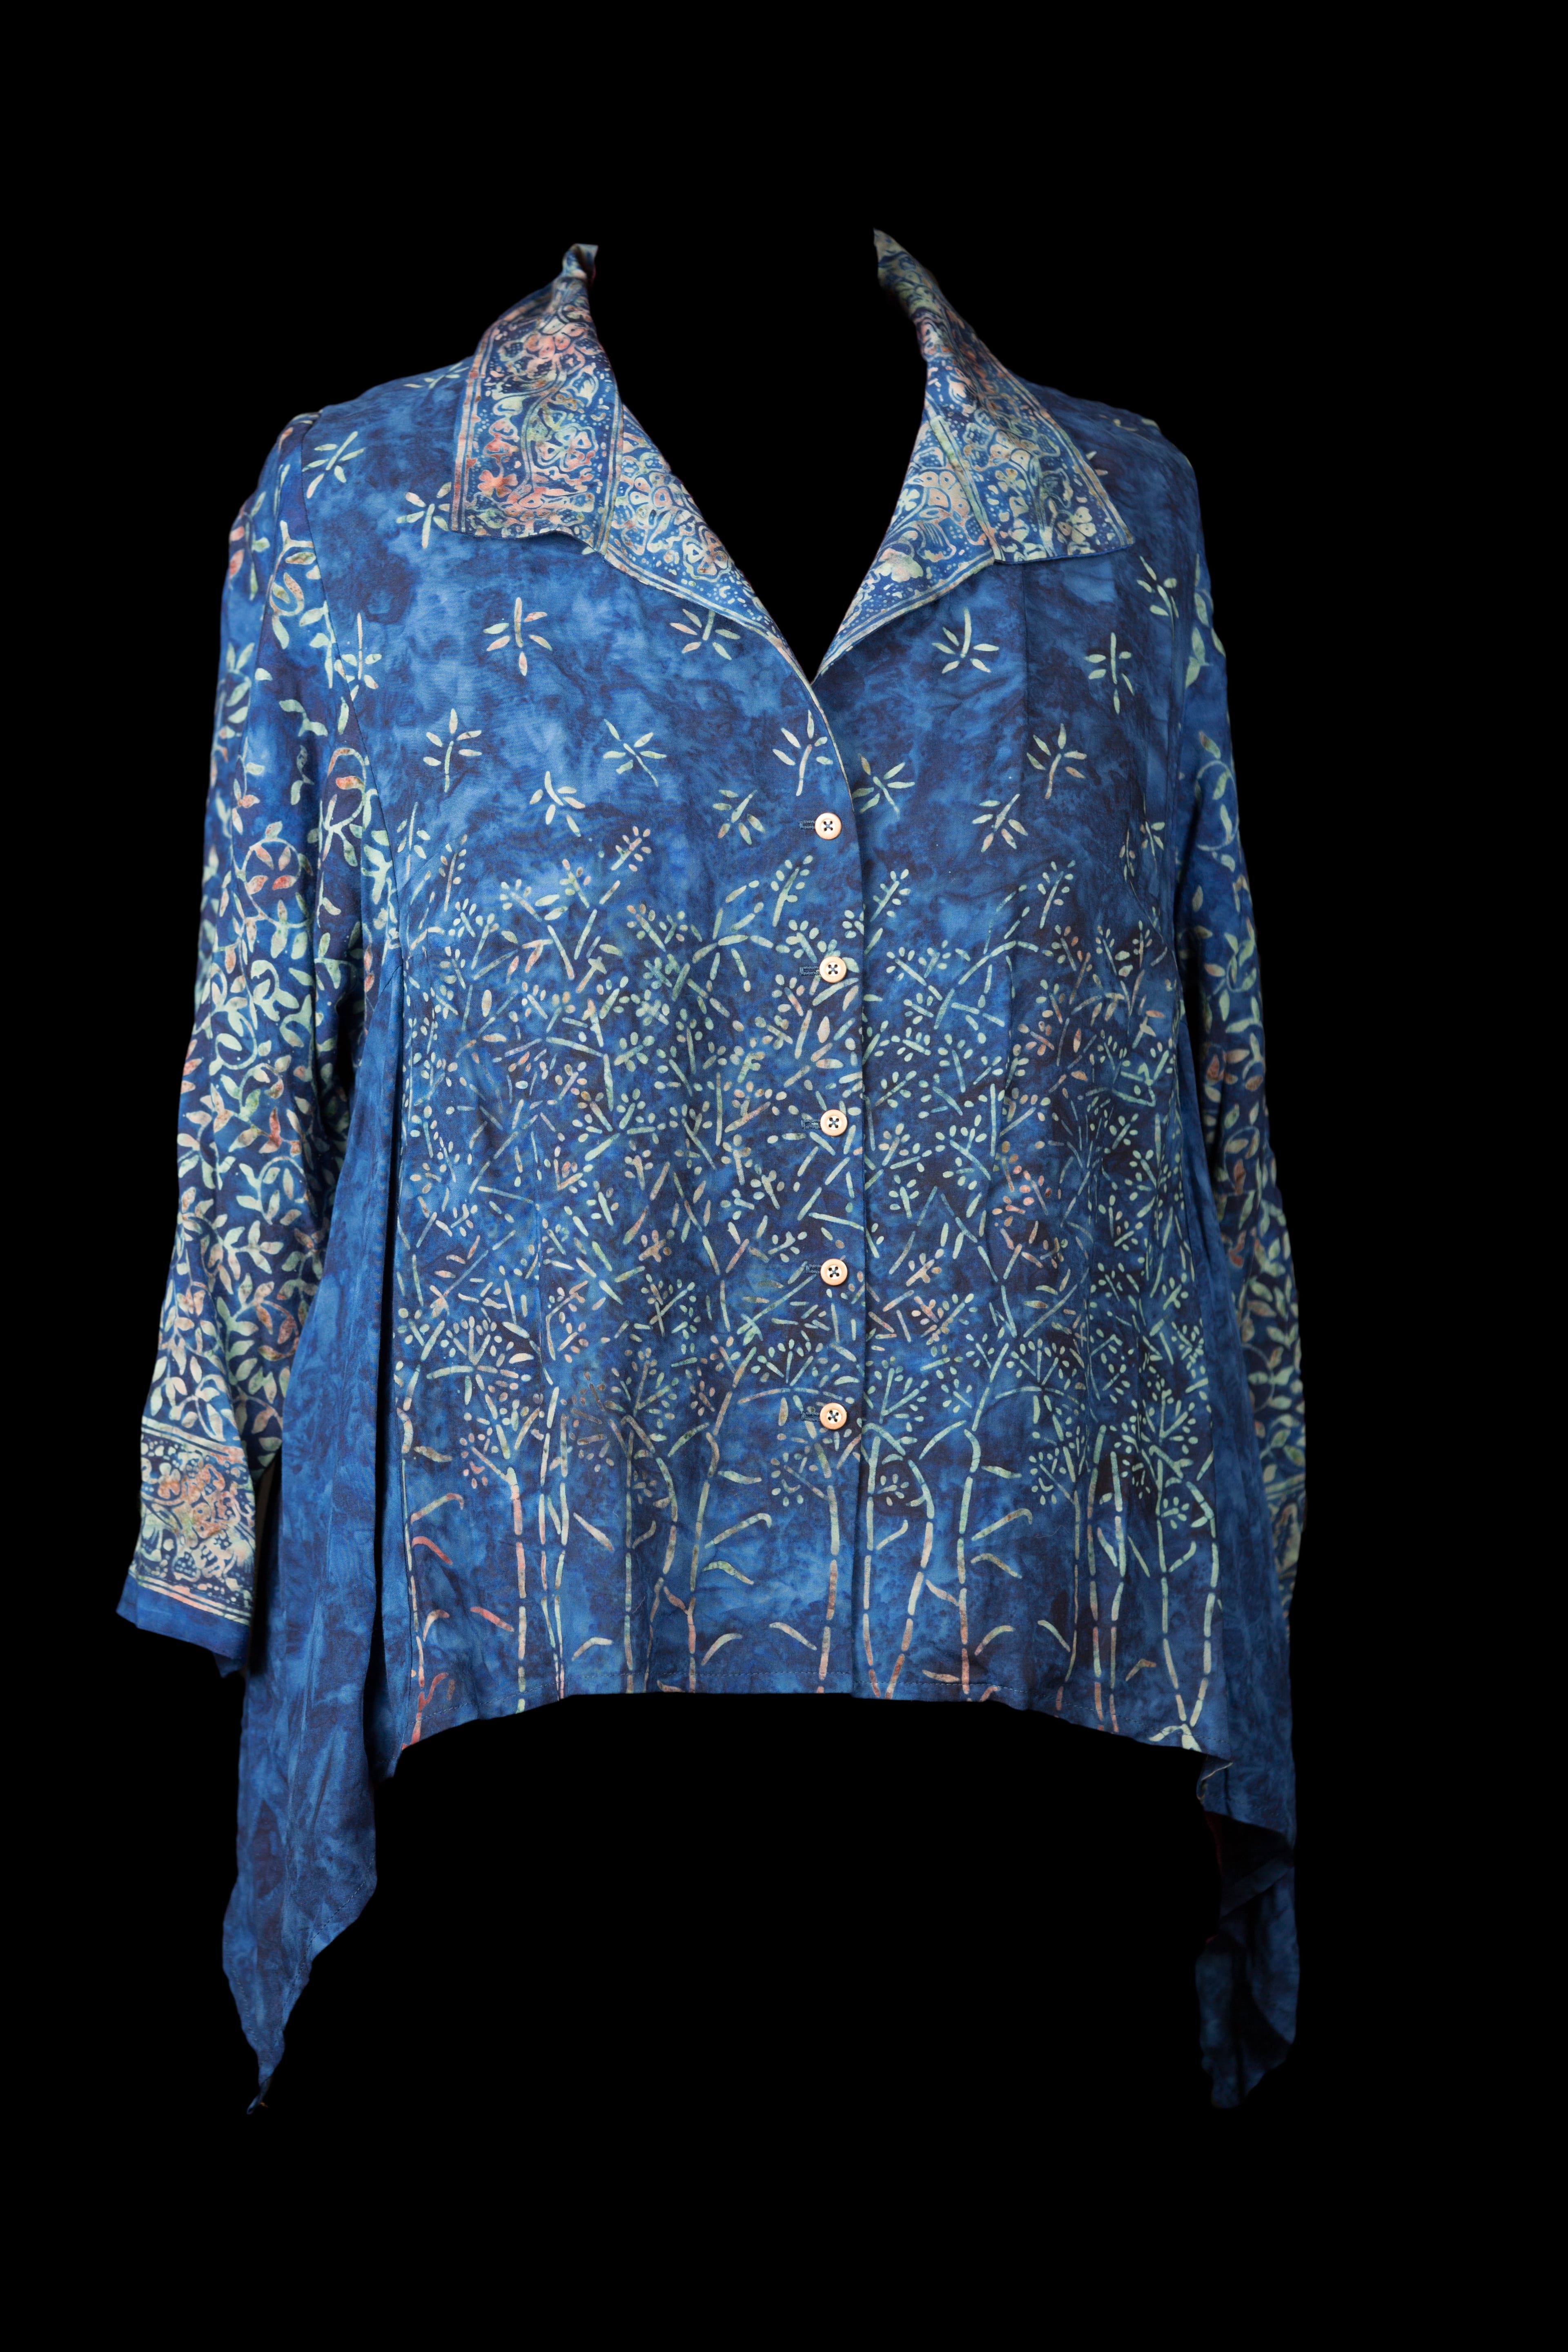 Blue Rayon Shirt with spread collar and swing side